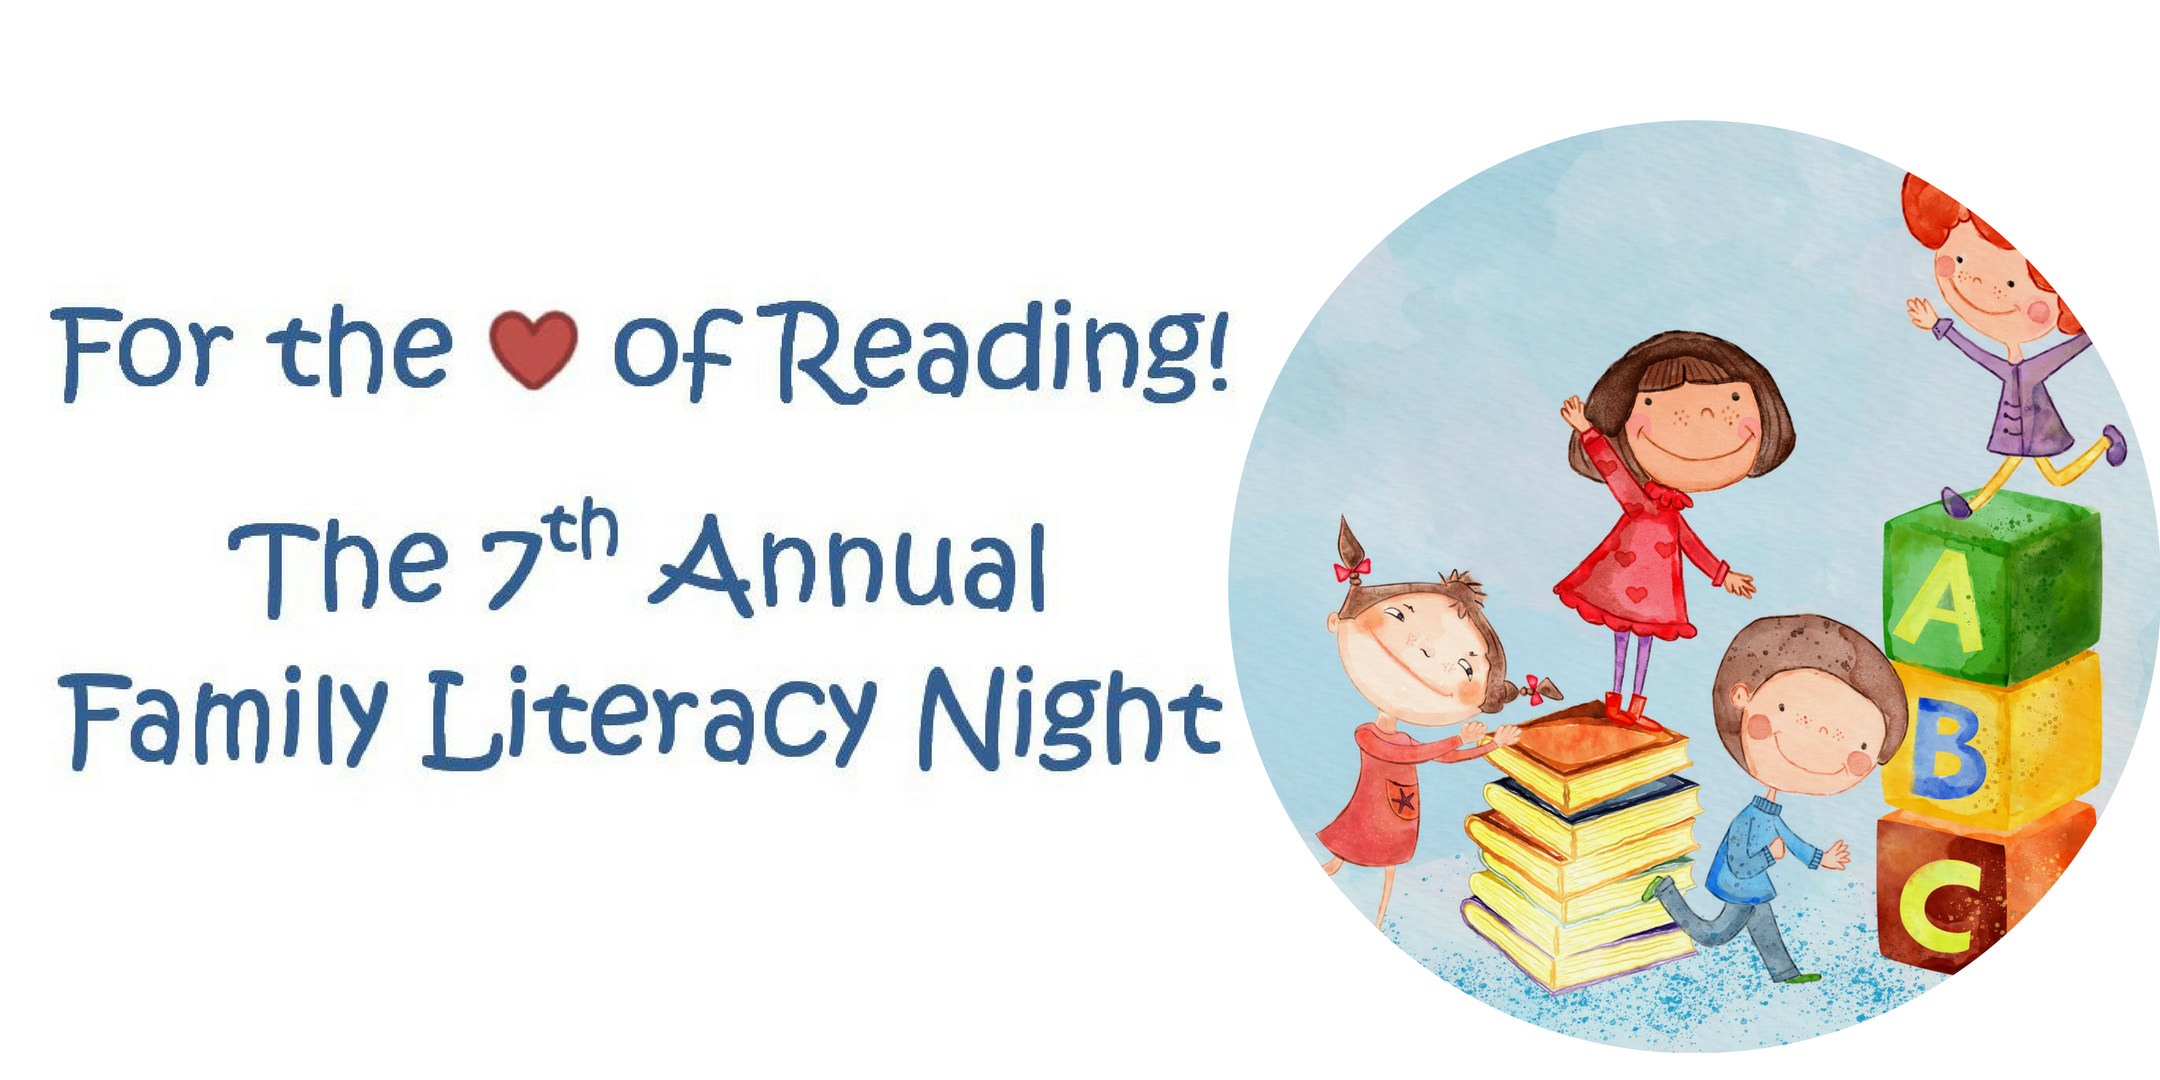 For the Love of Reading - 7th Annual Family Literacy Night